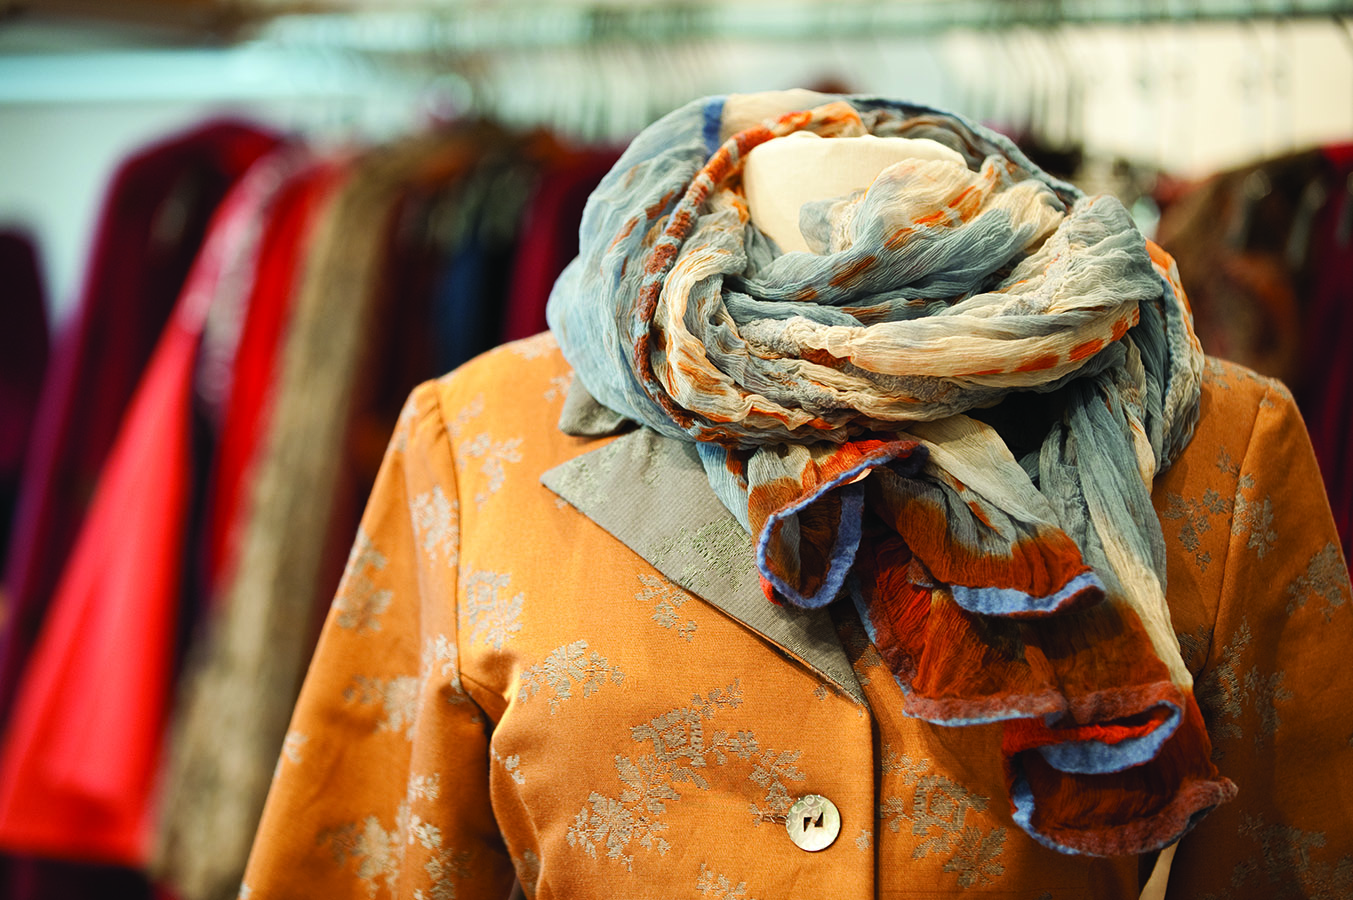 Karol Richardson scarf with yellow brocade coat jacket on manequin